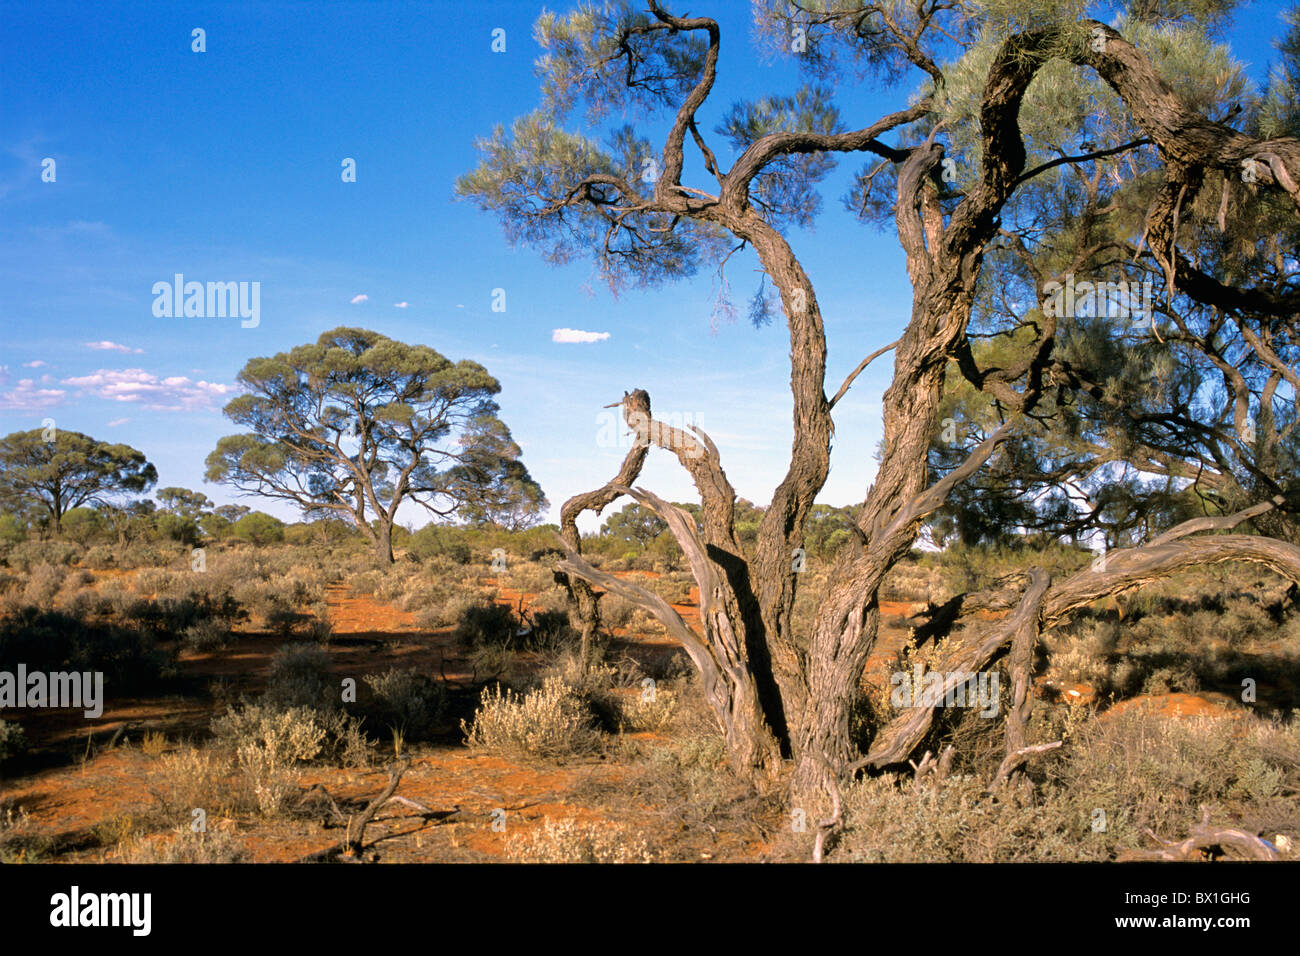 Australia outback scenery landscape south australia trees for South australia landscape